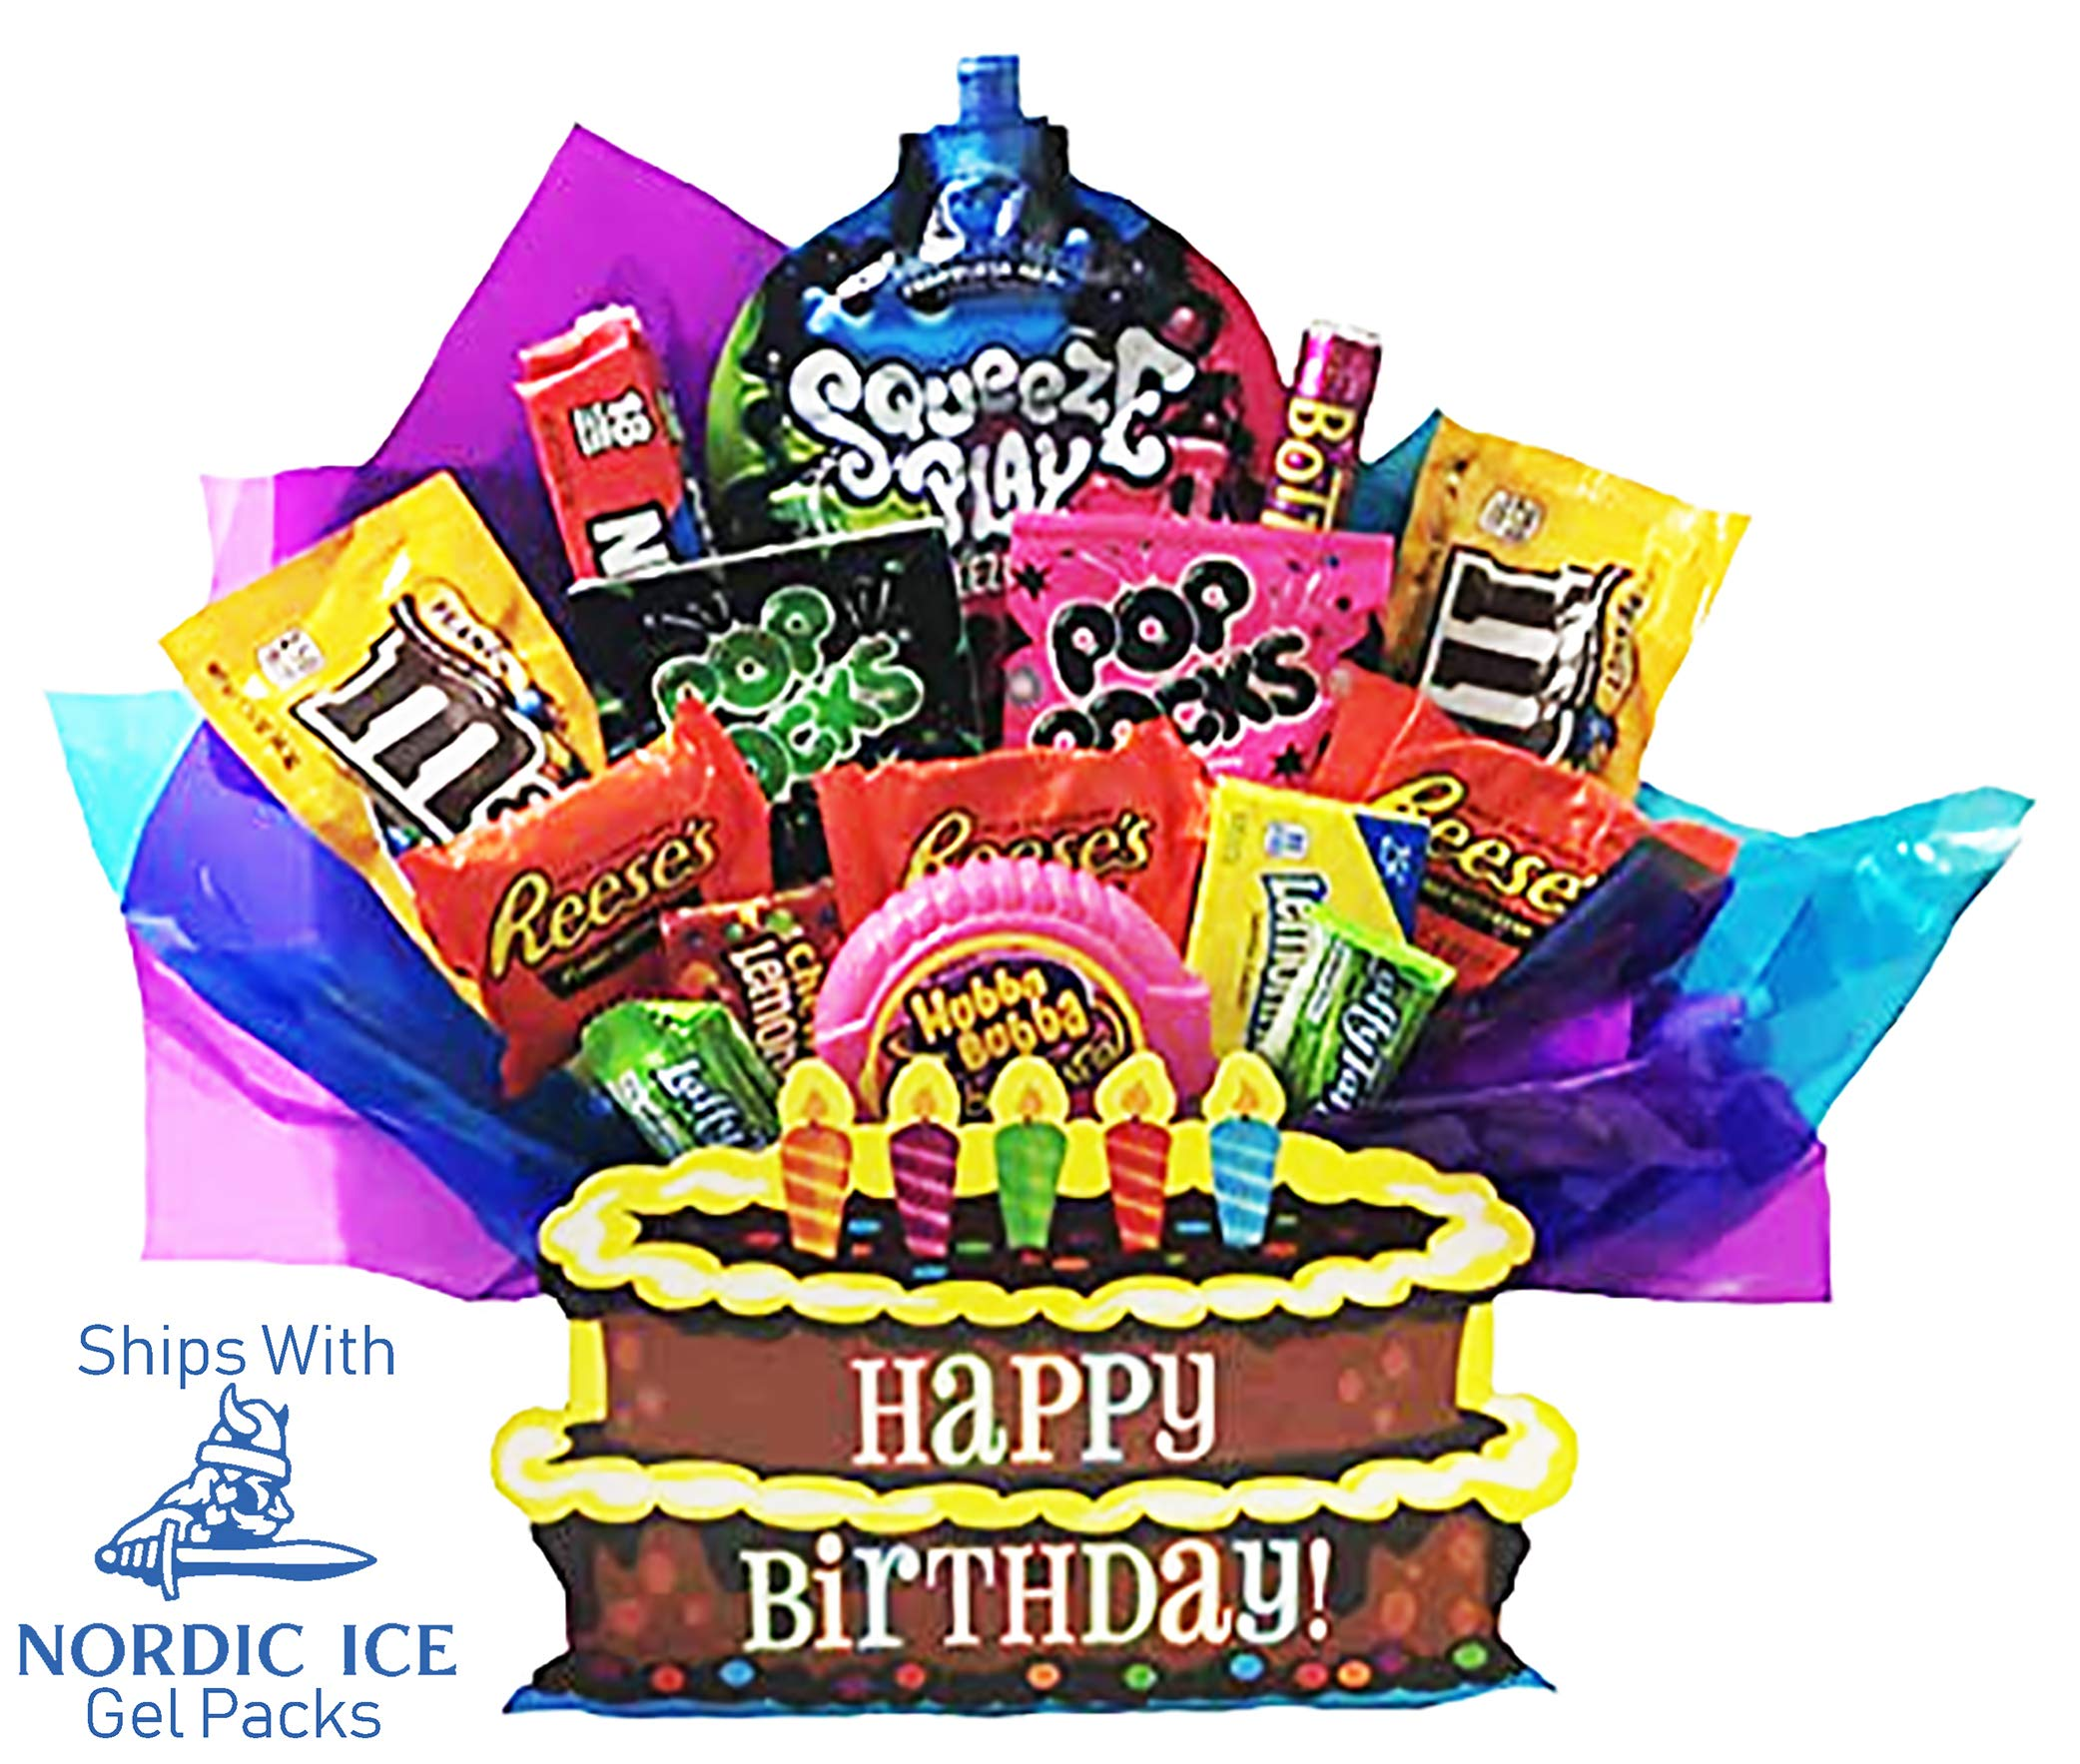 CDM product Happy Birthday Chocolate and Candy Present in Decorative Gift Box. Full of Brand Name Popular Items. big image